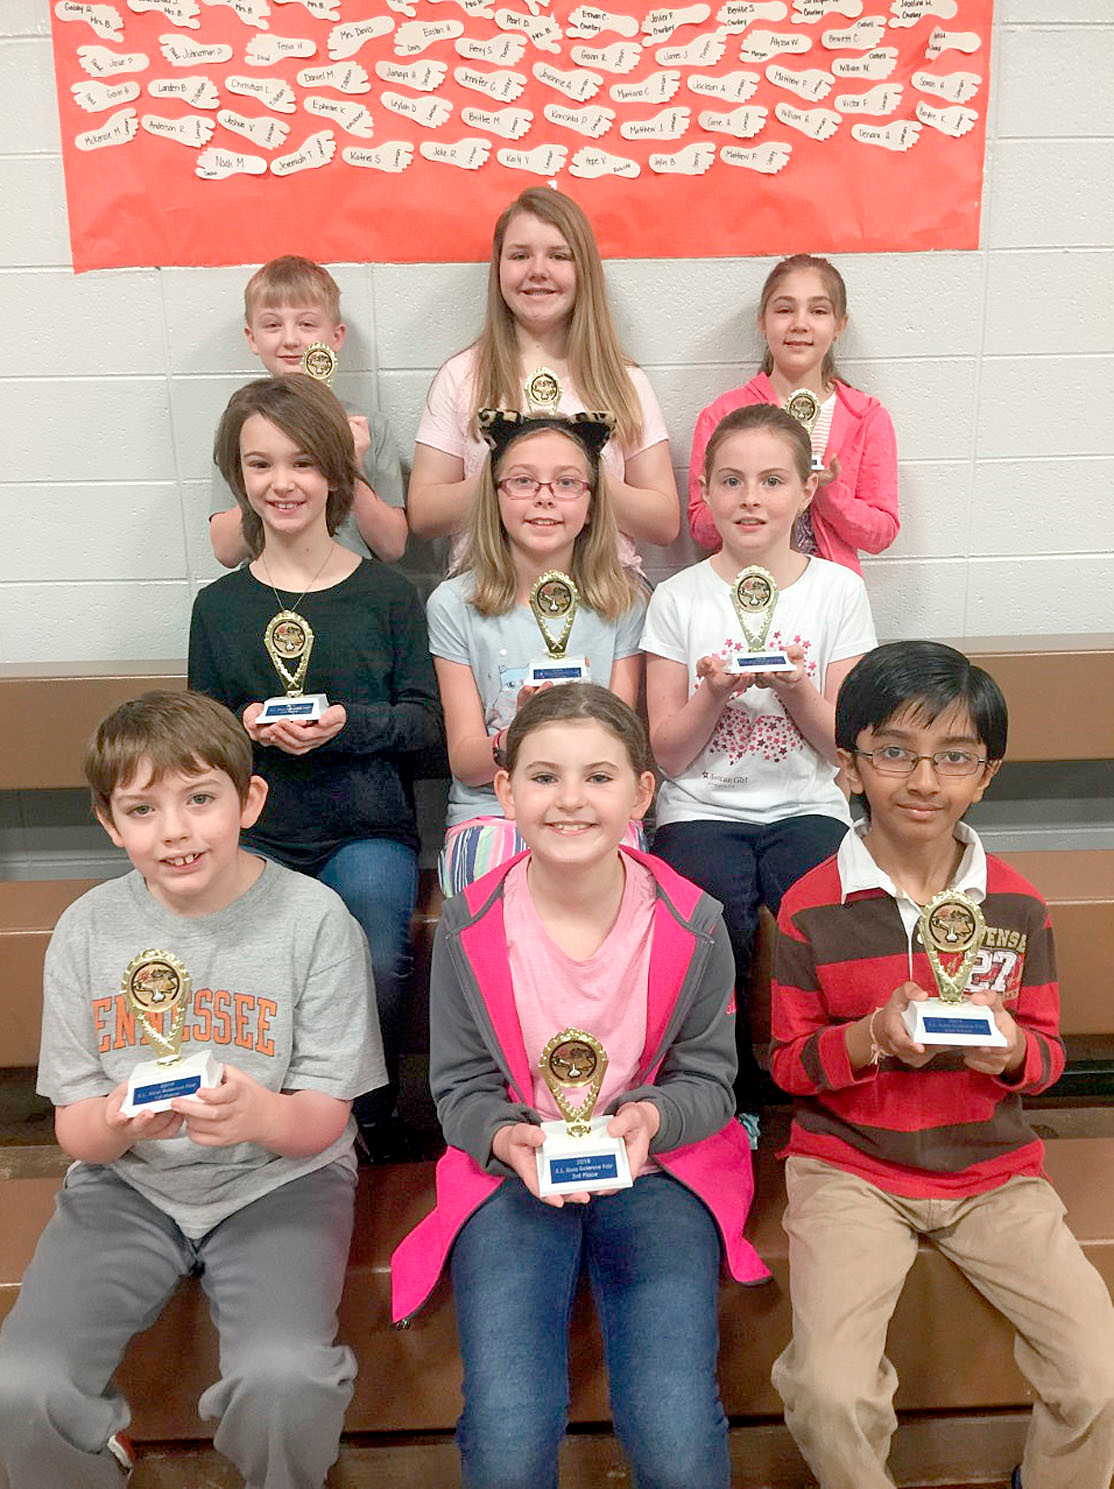 E.L. Ross 2018 Science Fair winners are, front row from left, Ben Stewart, first place; Julianna Burchfield, third; and Neel Patel, second. In row two are Eve Goforth, third; Ashley Pesterfield, first; and Maggi Creel, second. In back are Jaxson Collins, third; Natalie Clark, second; and Eva Laslie, first.